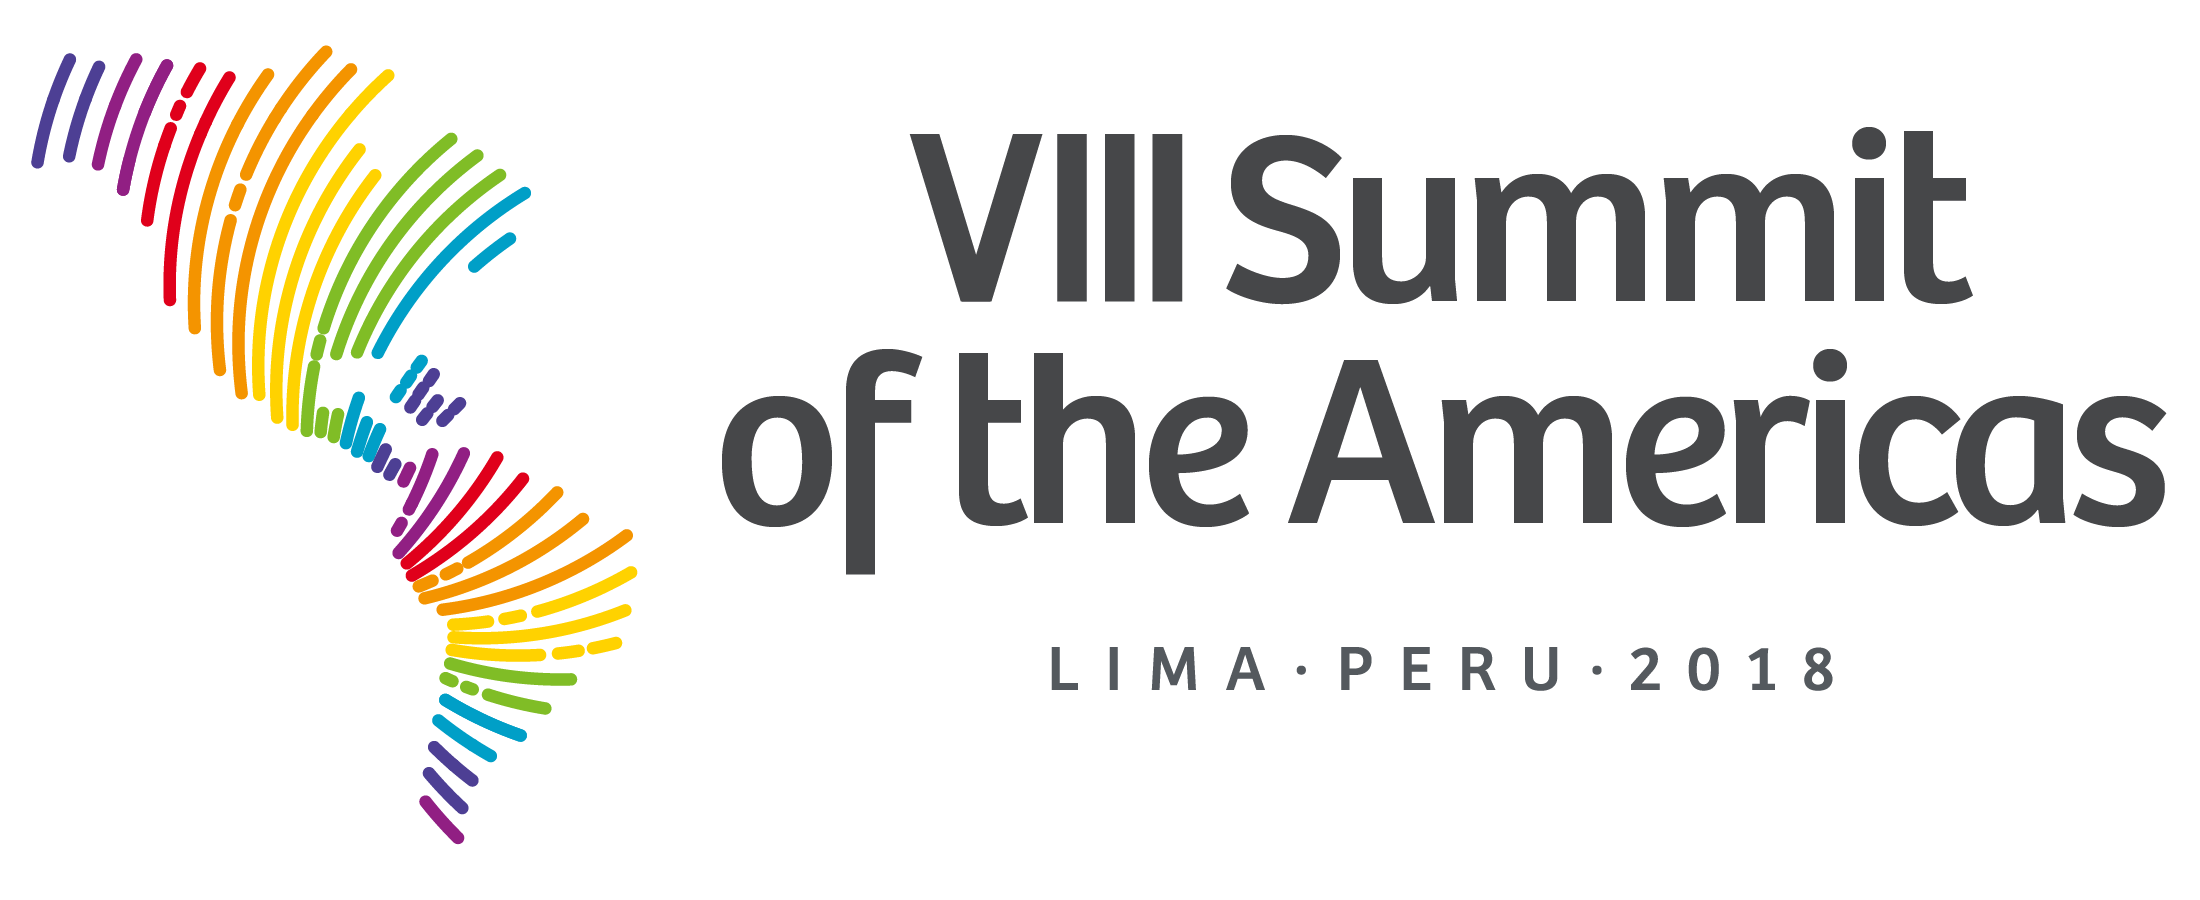 VIII Summit of the Americas